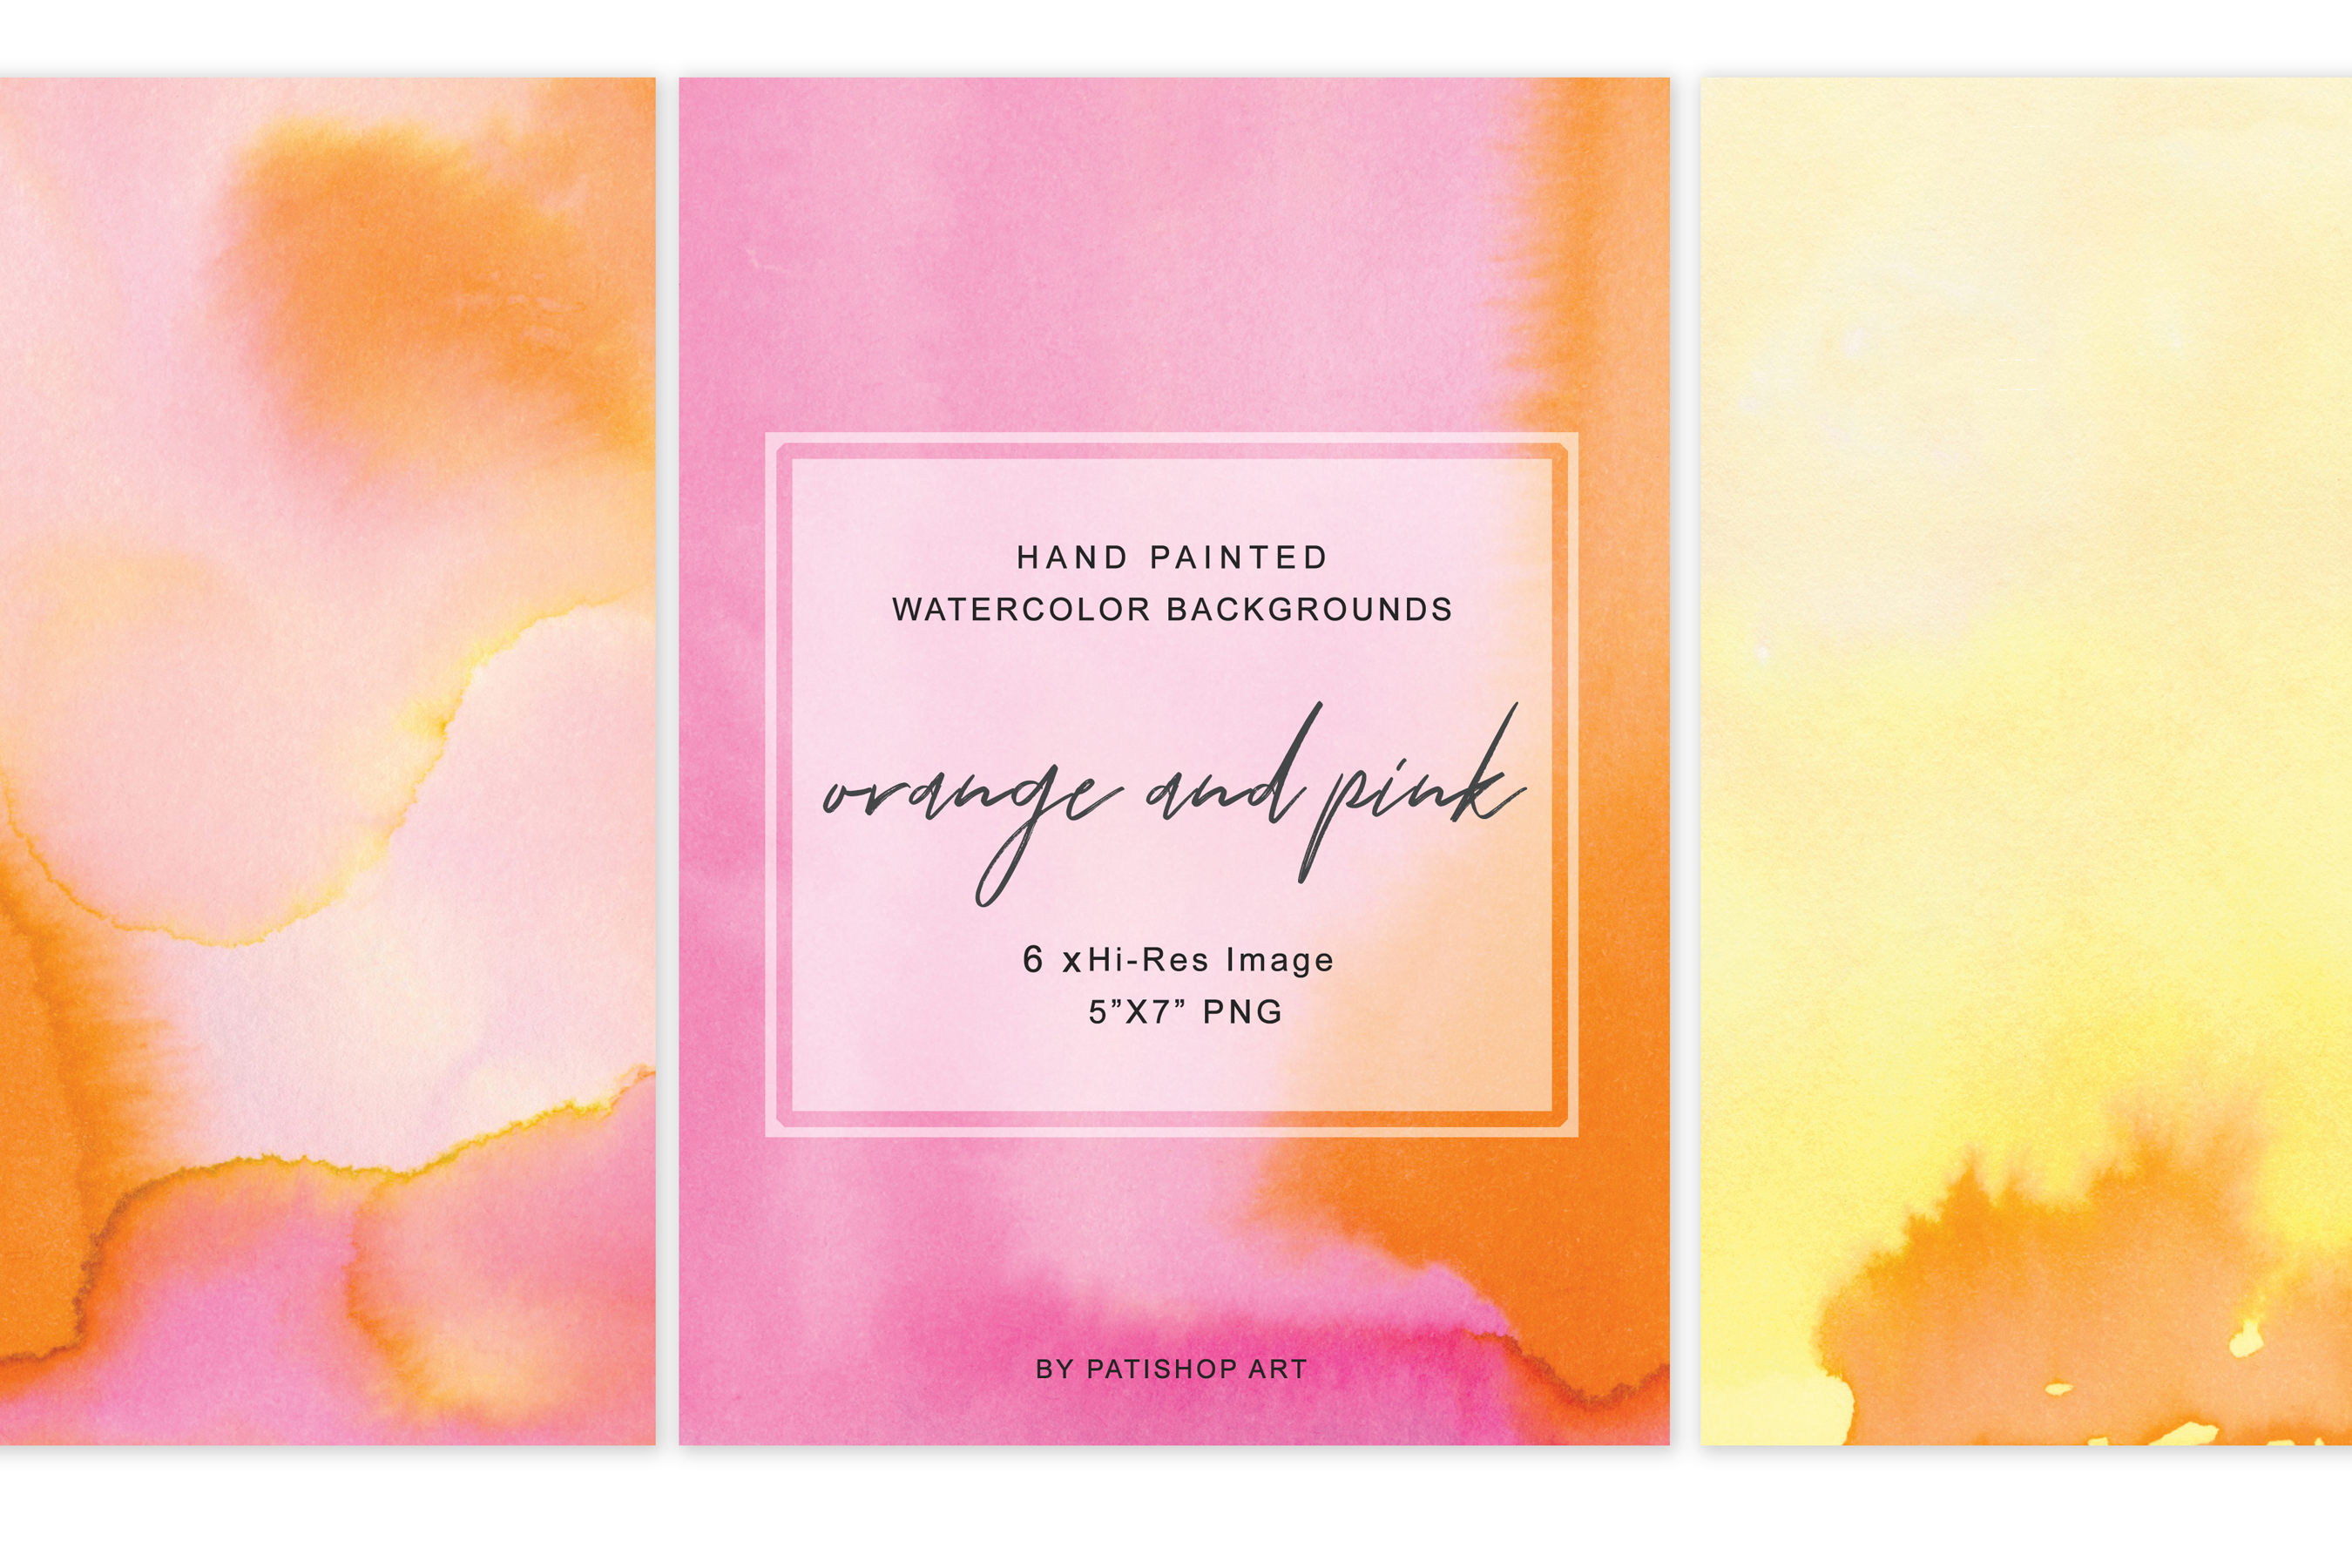 Hand Painted Watercolor Background Orange & Pink 5x7 example image 3